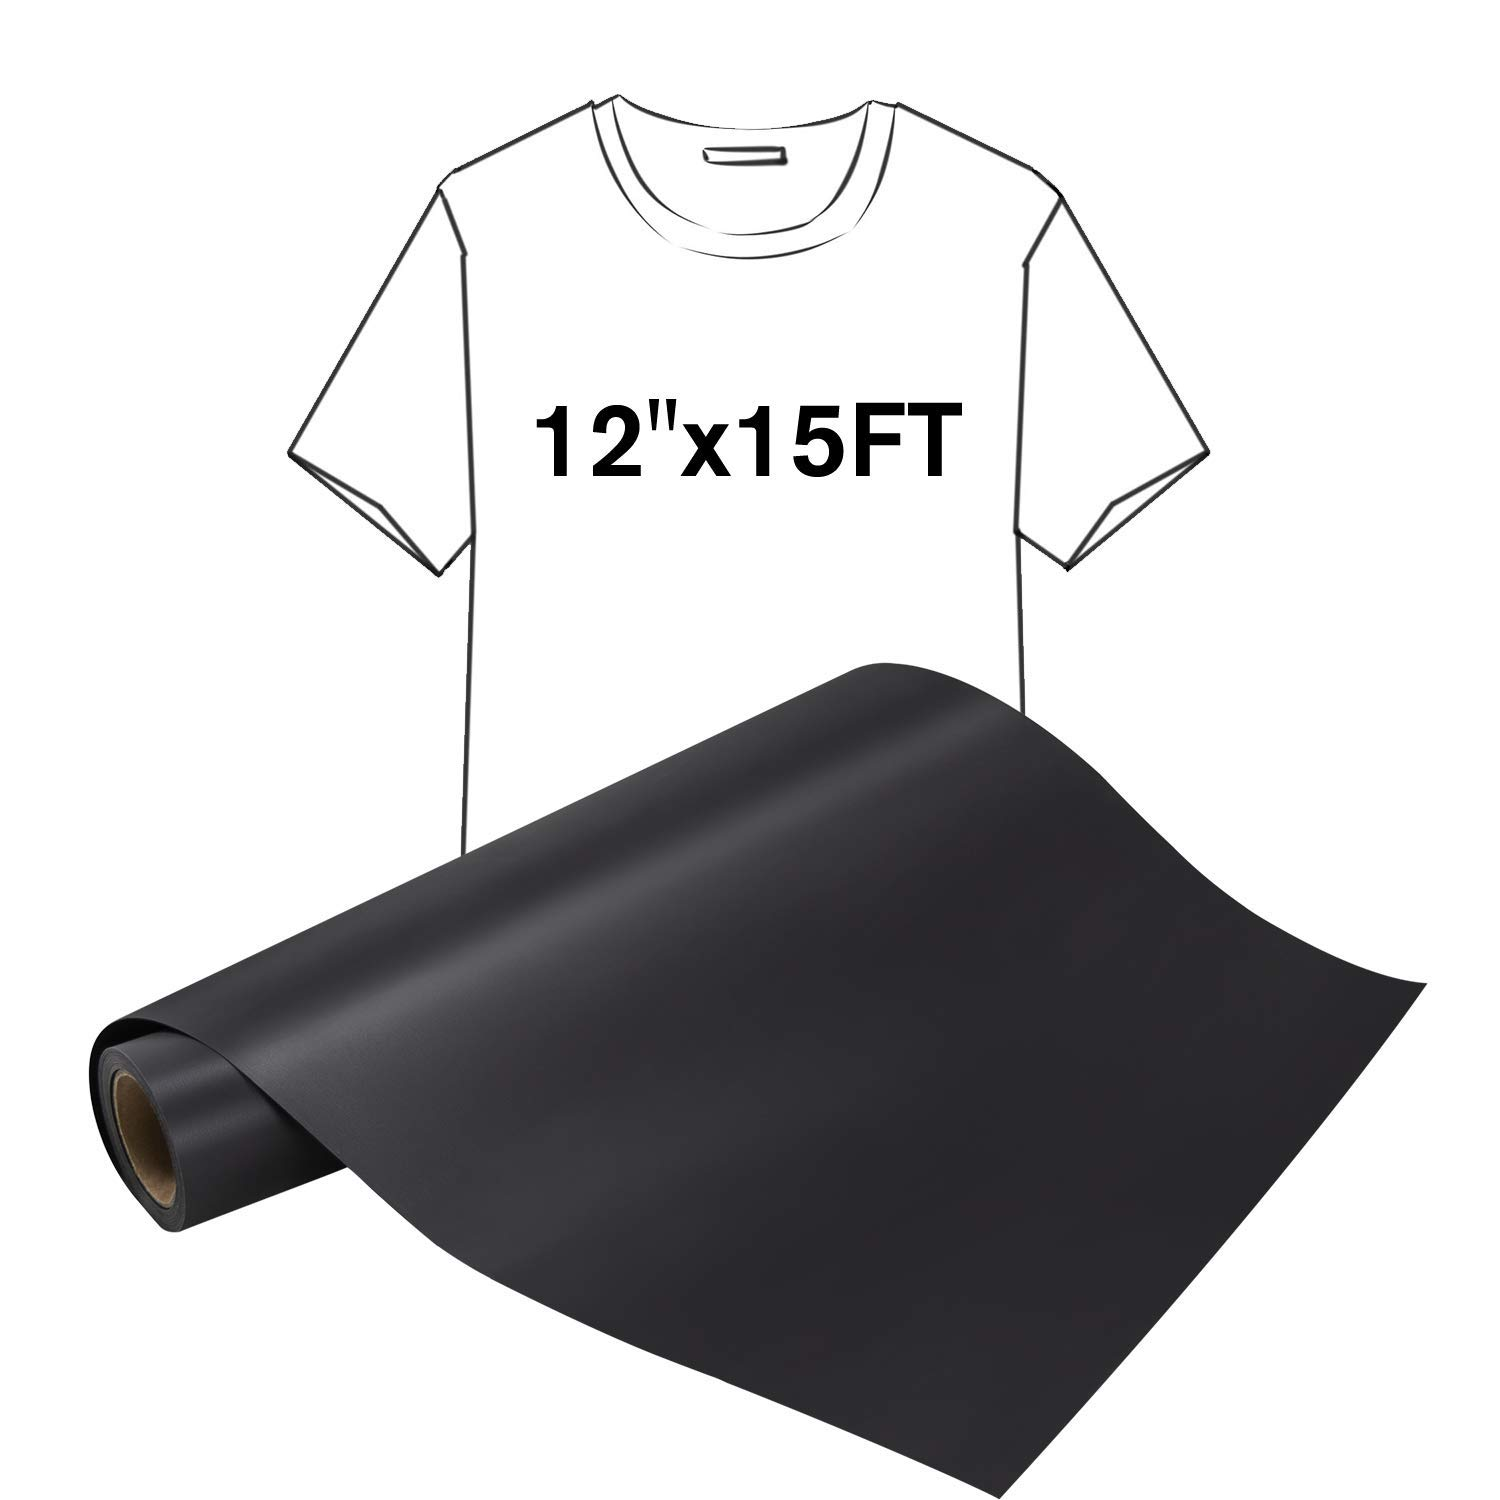 PU HTV Heat Transfer Vinyl by Somolux for Cricut and Silhouette Cameo Iron-On Transfer for DIY T-Shirts /& Fabrics Easy to Weed HoneyTolly HTV Vinyl Bundle 10 x 12-20 Sheets 10 Assorted Colors